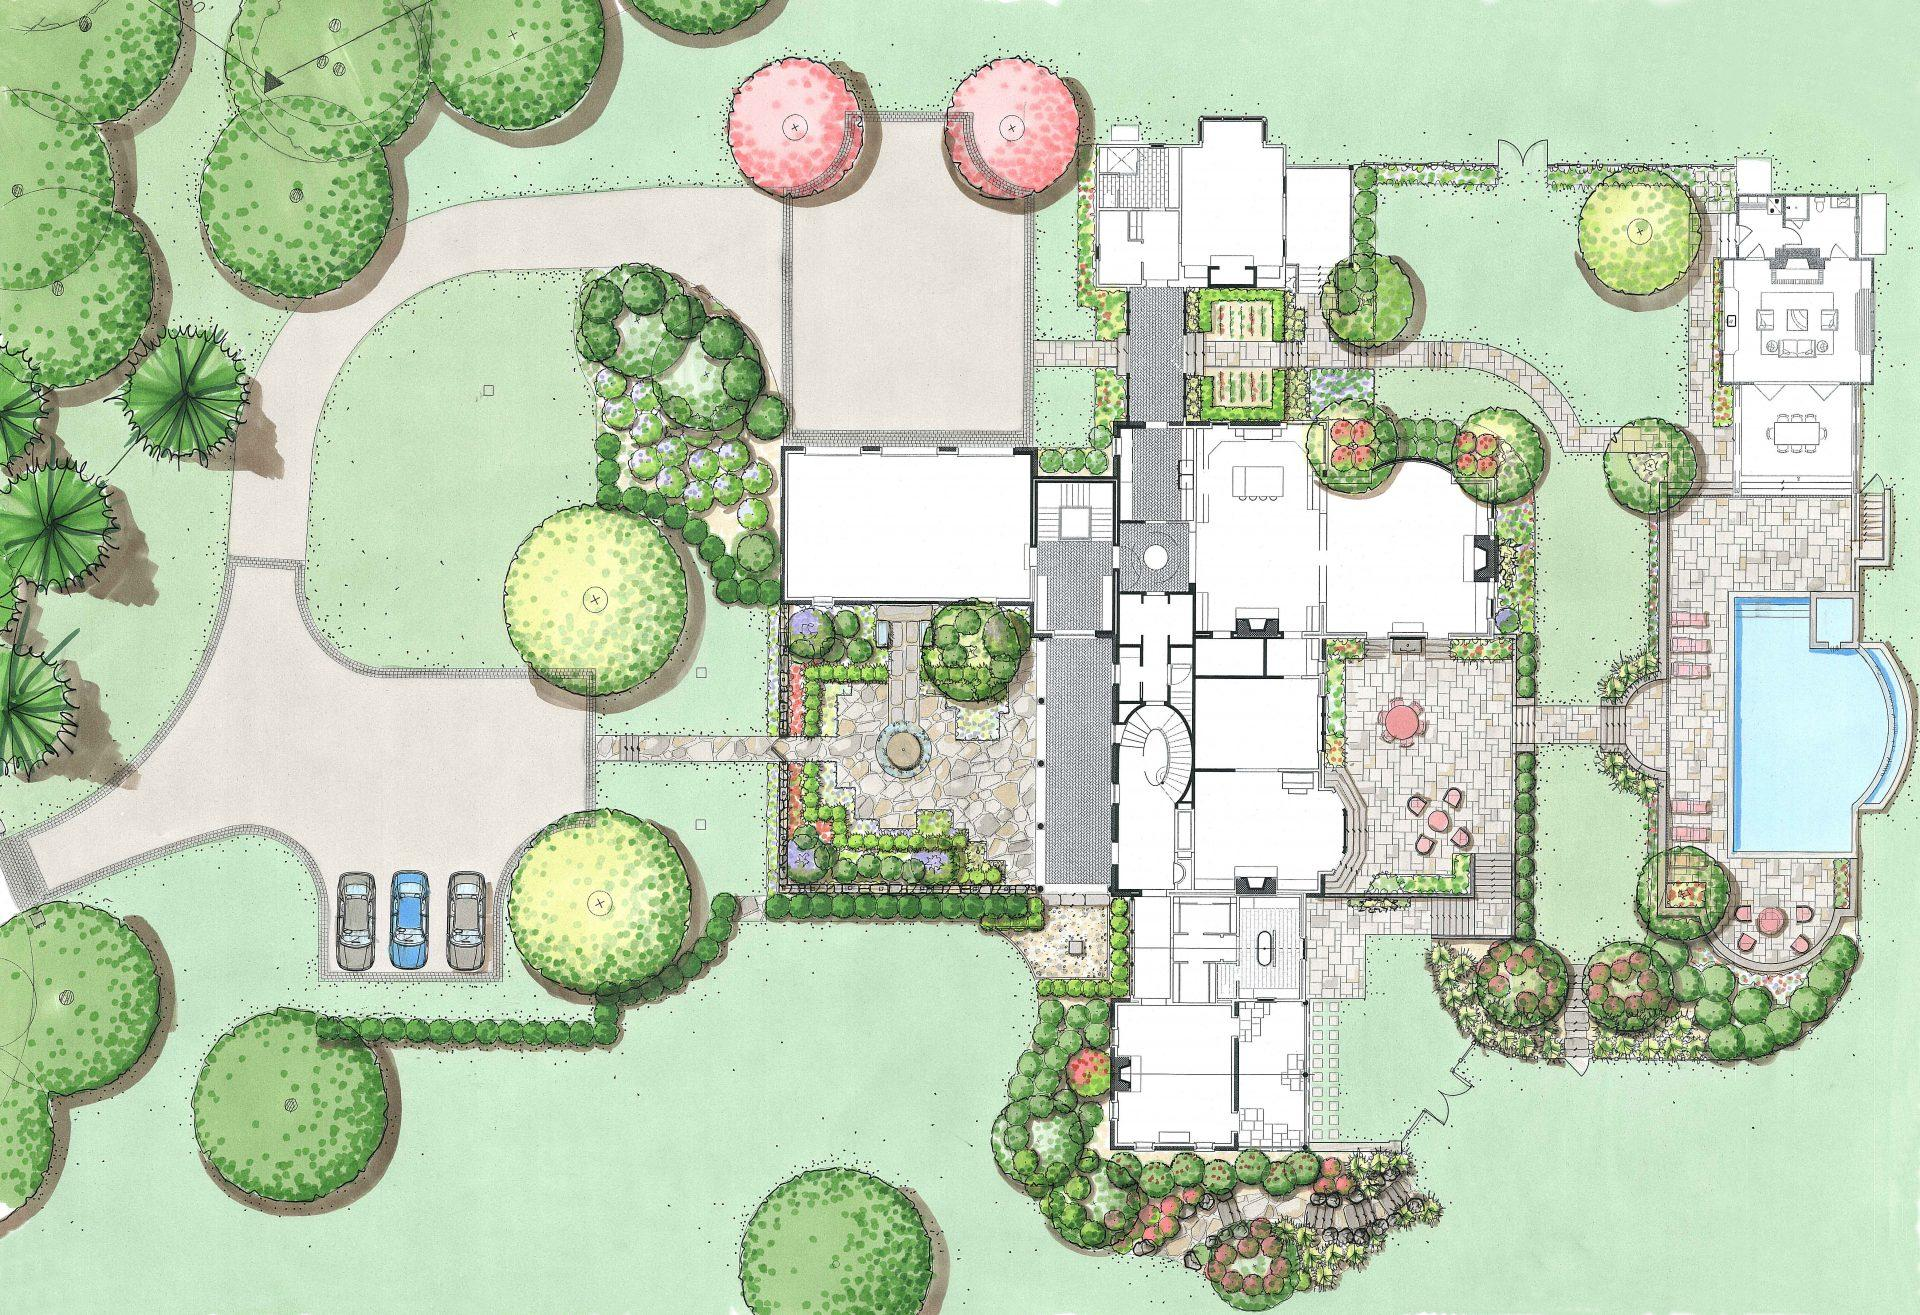 concept-color-plan-drawing-landscaping-design-chester-county-pa-estate